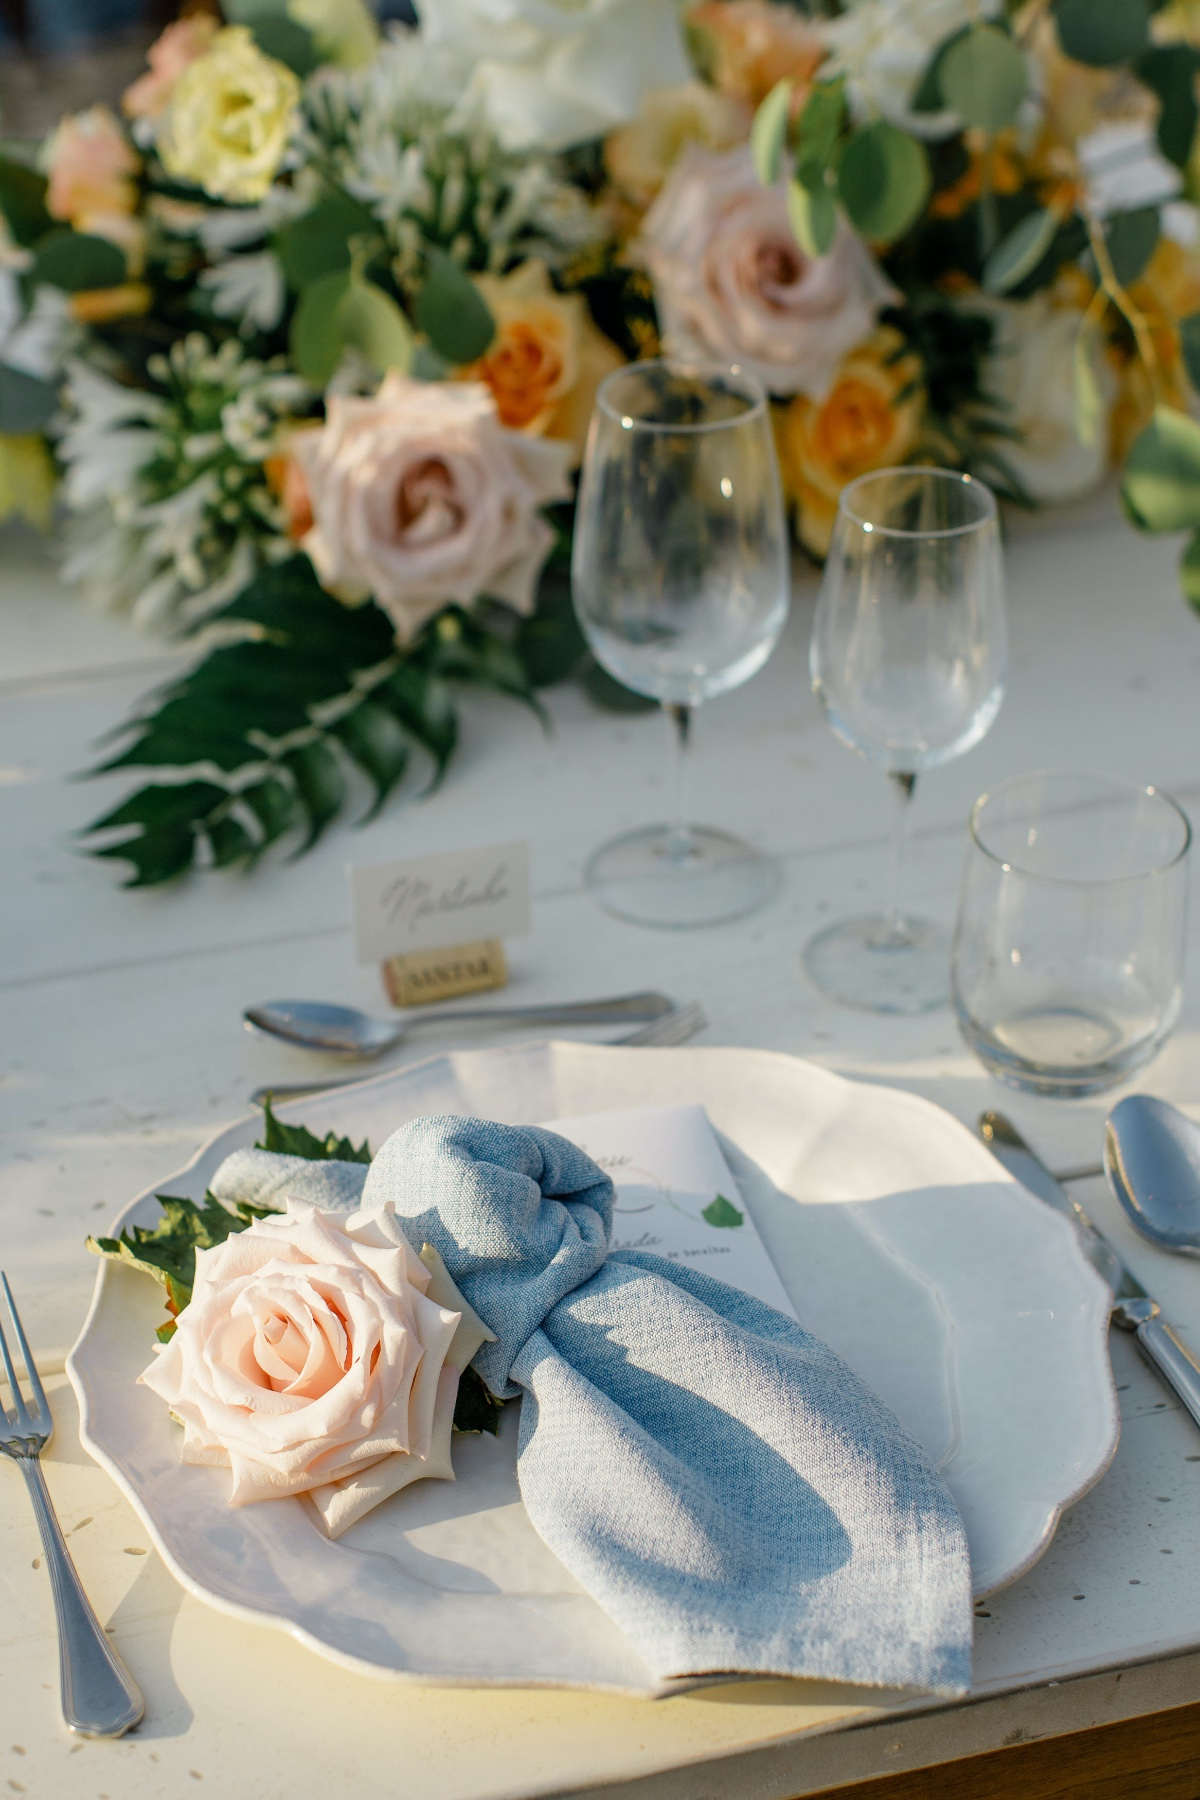 chambray napkins with rose on plate